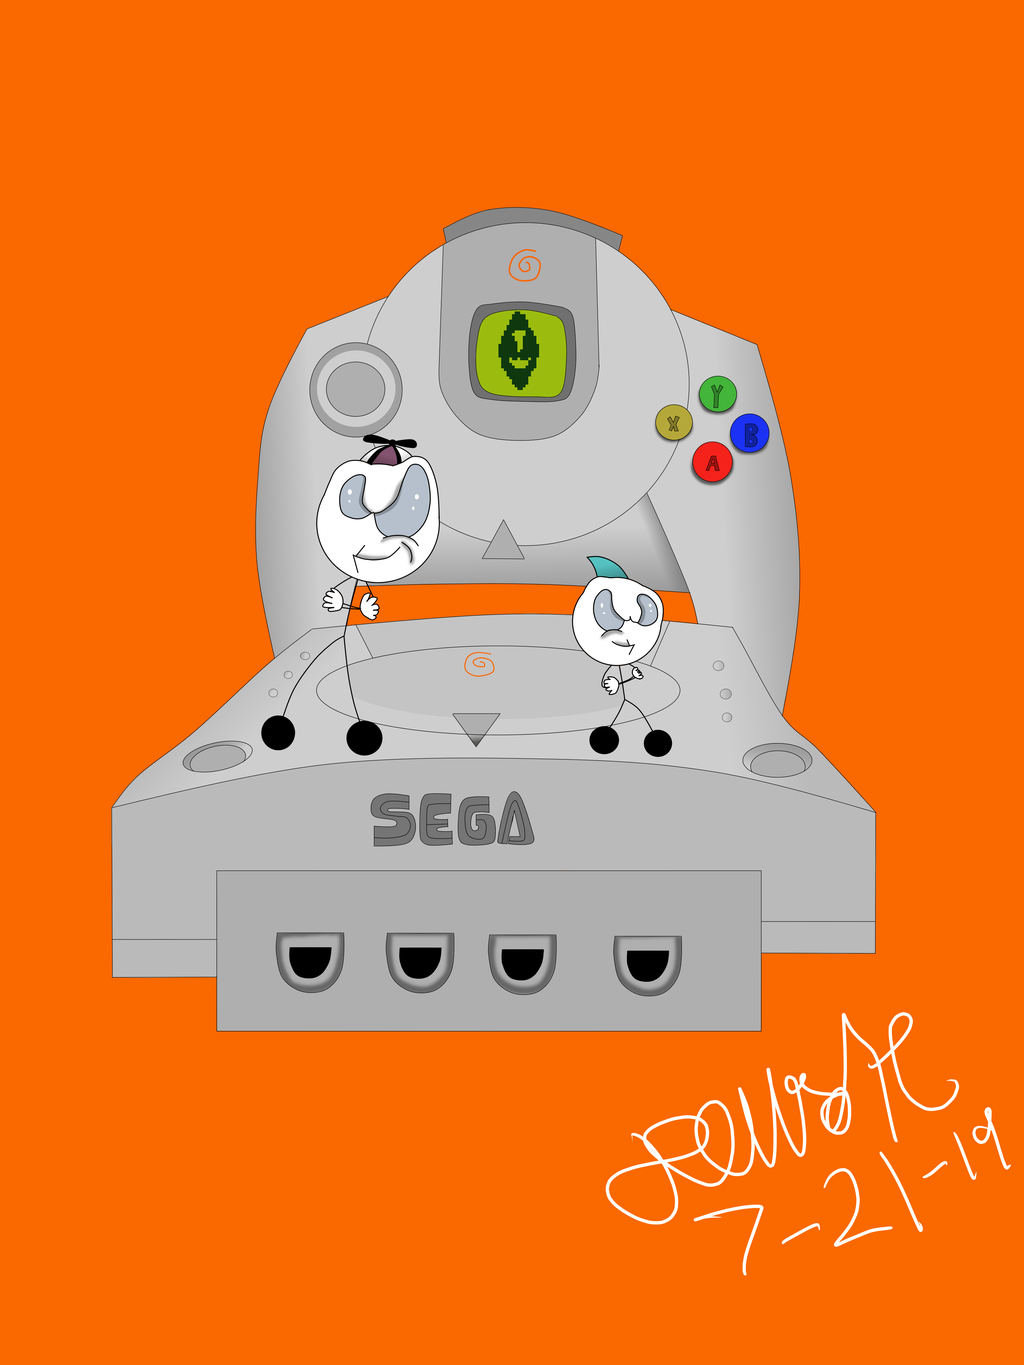 Most recent image: Dreamcast's 20th birthday